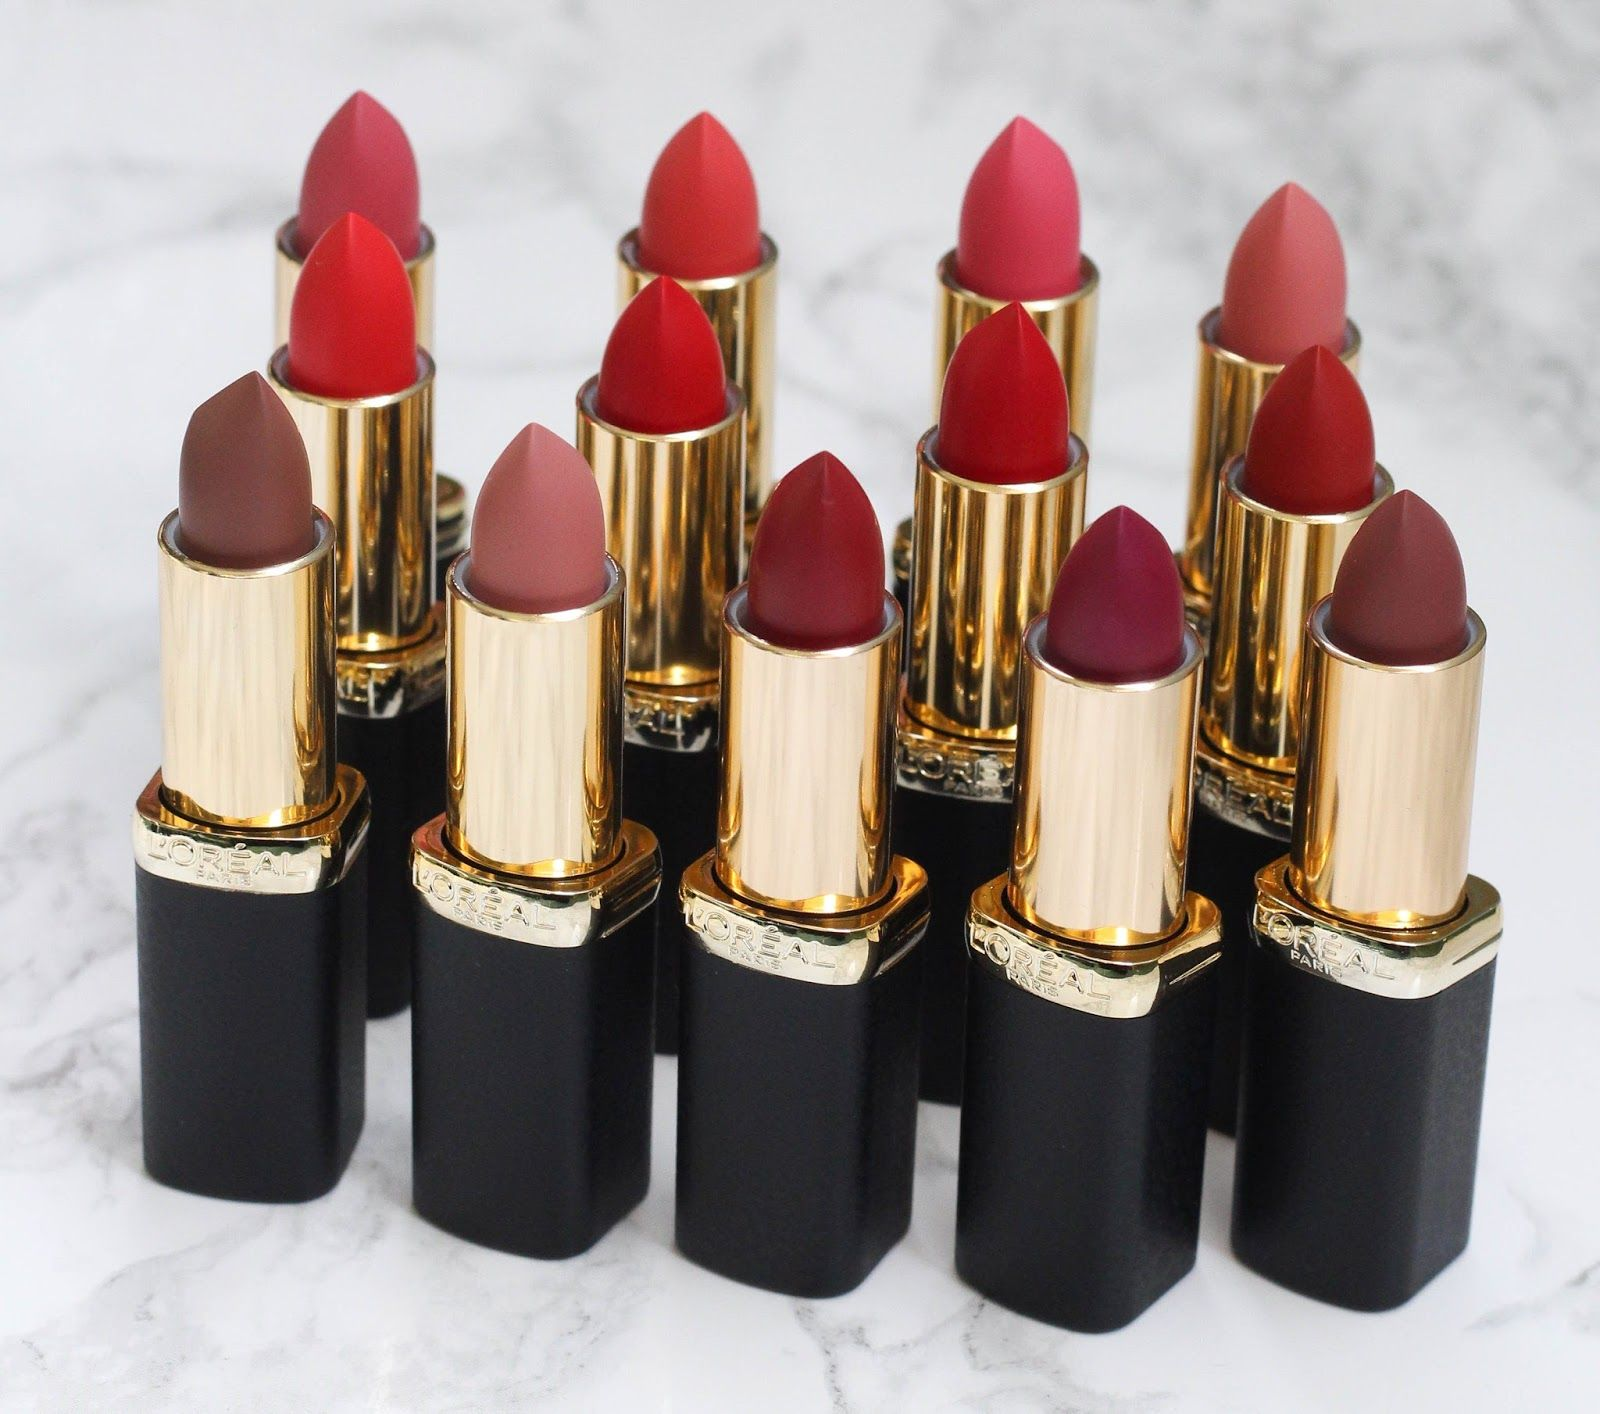 Colour Riche Gold Addiction Lipstick by L'Oreal #15